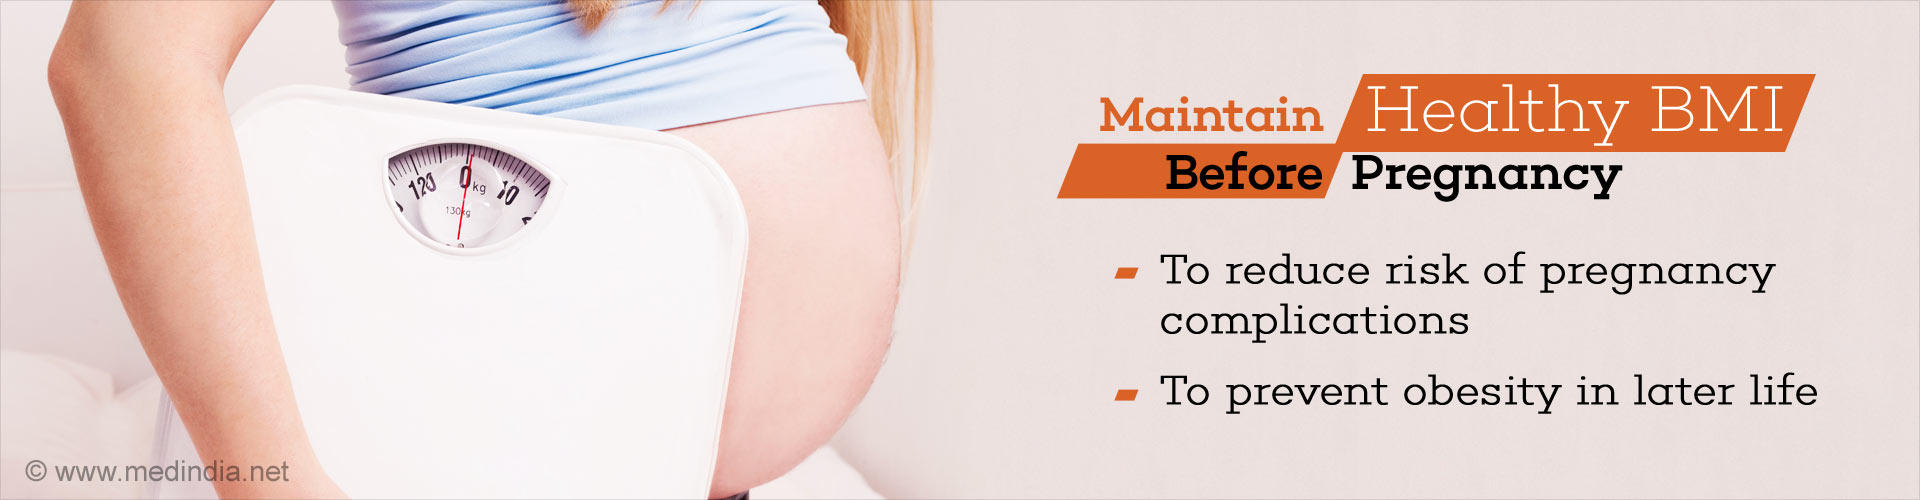 Maintain Healthy BMI Before Pregnancy